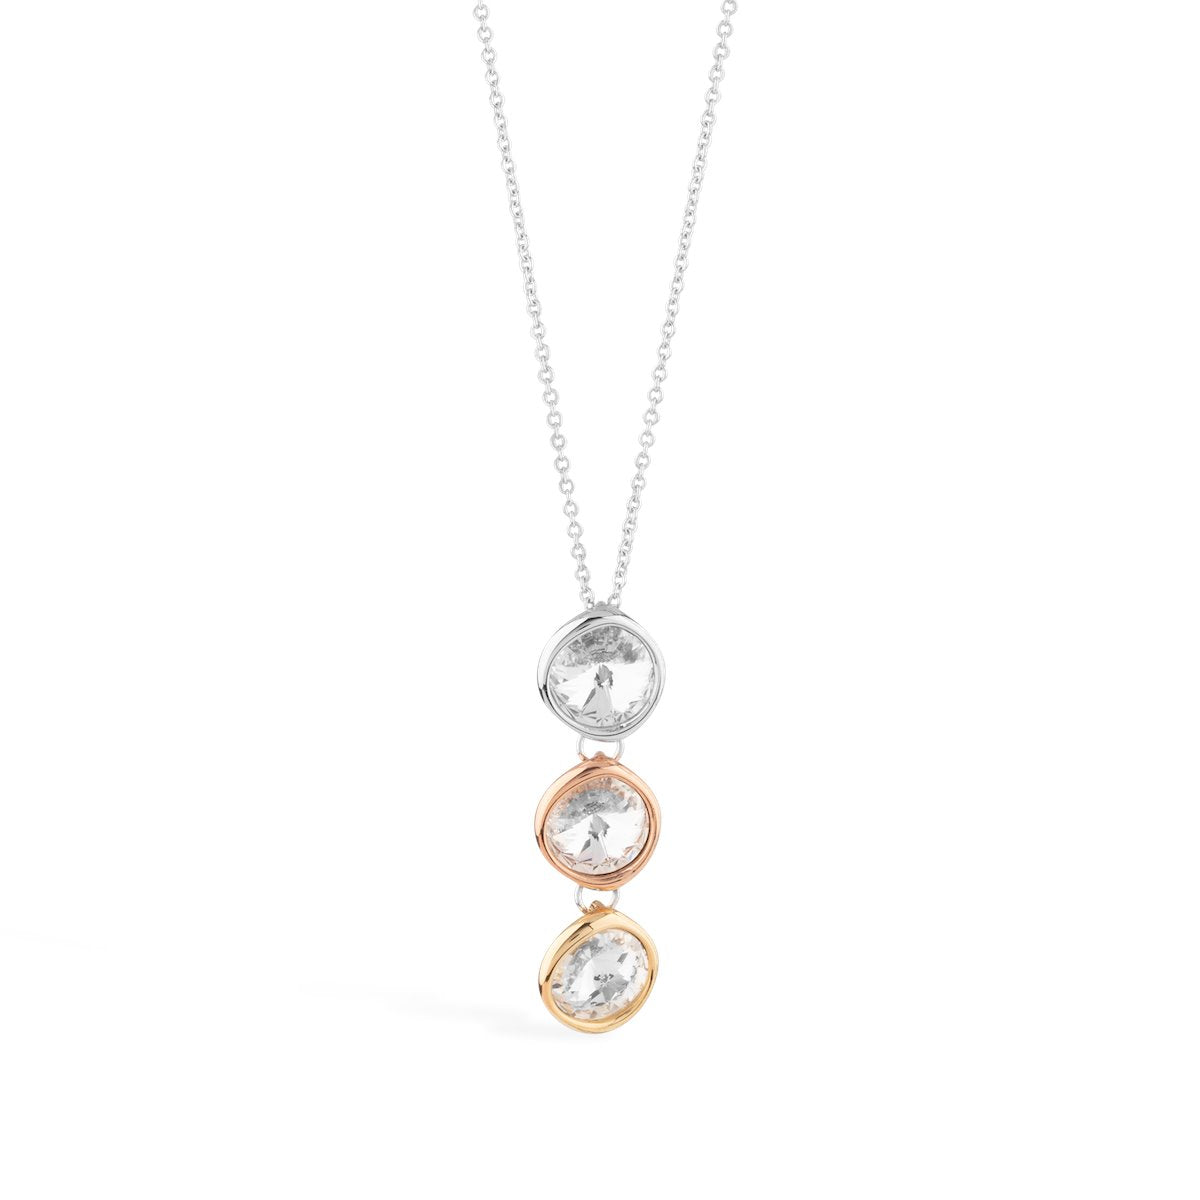 Hudson Necklace forevercrystals